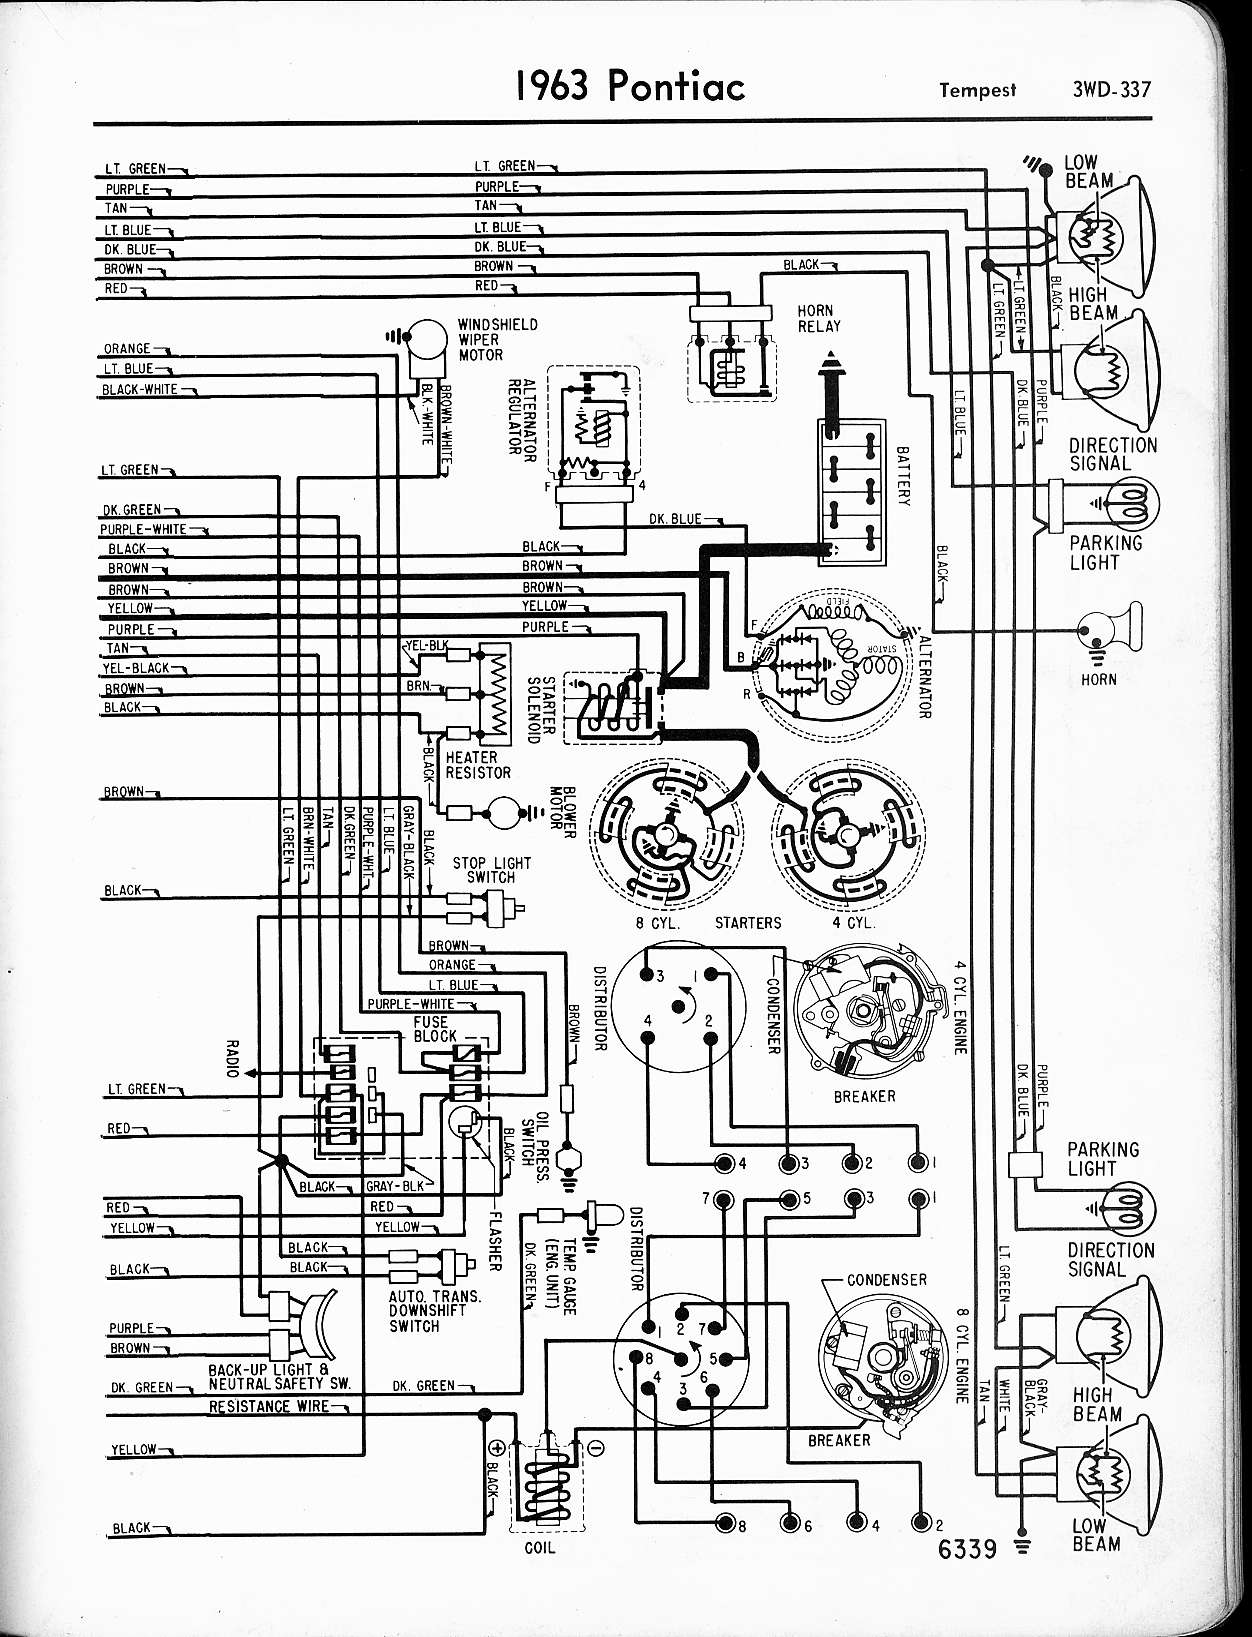 1969 pontiac le mans fuse box diagram wiring diagram data 1976 Pontiac LeMans 1970 gto fuse box wiring diagram pontiac vibe fuse panel location 1969 pontiac le mans fuse box diagram